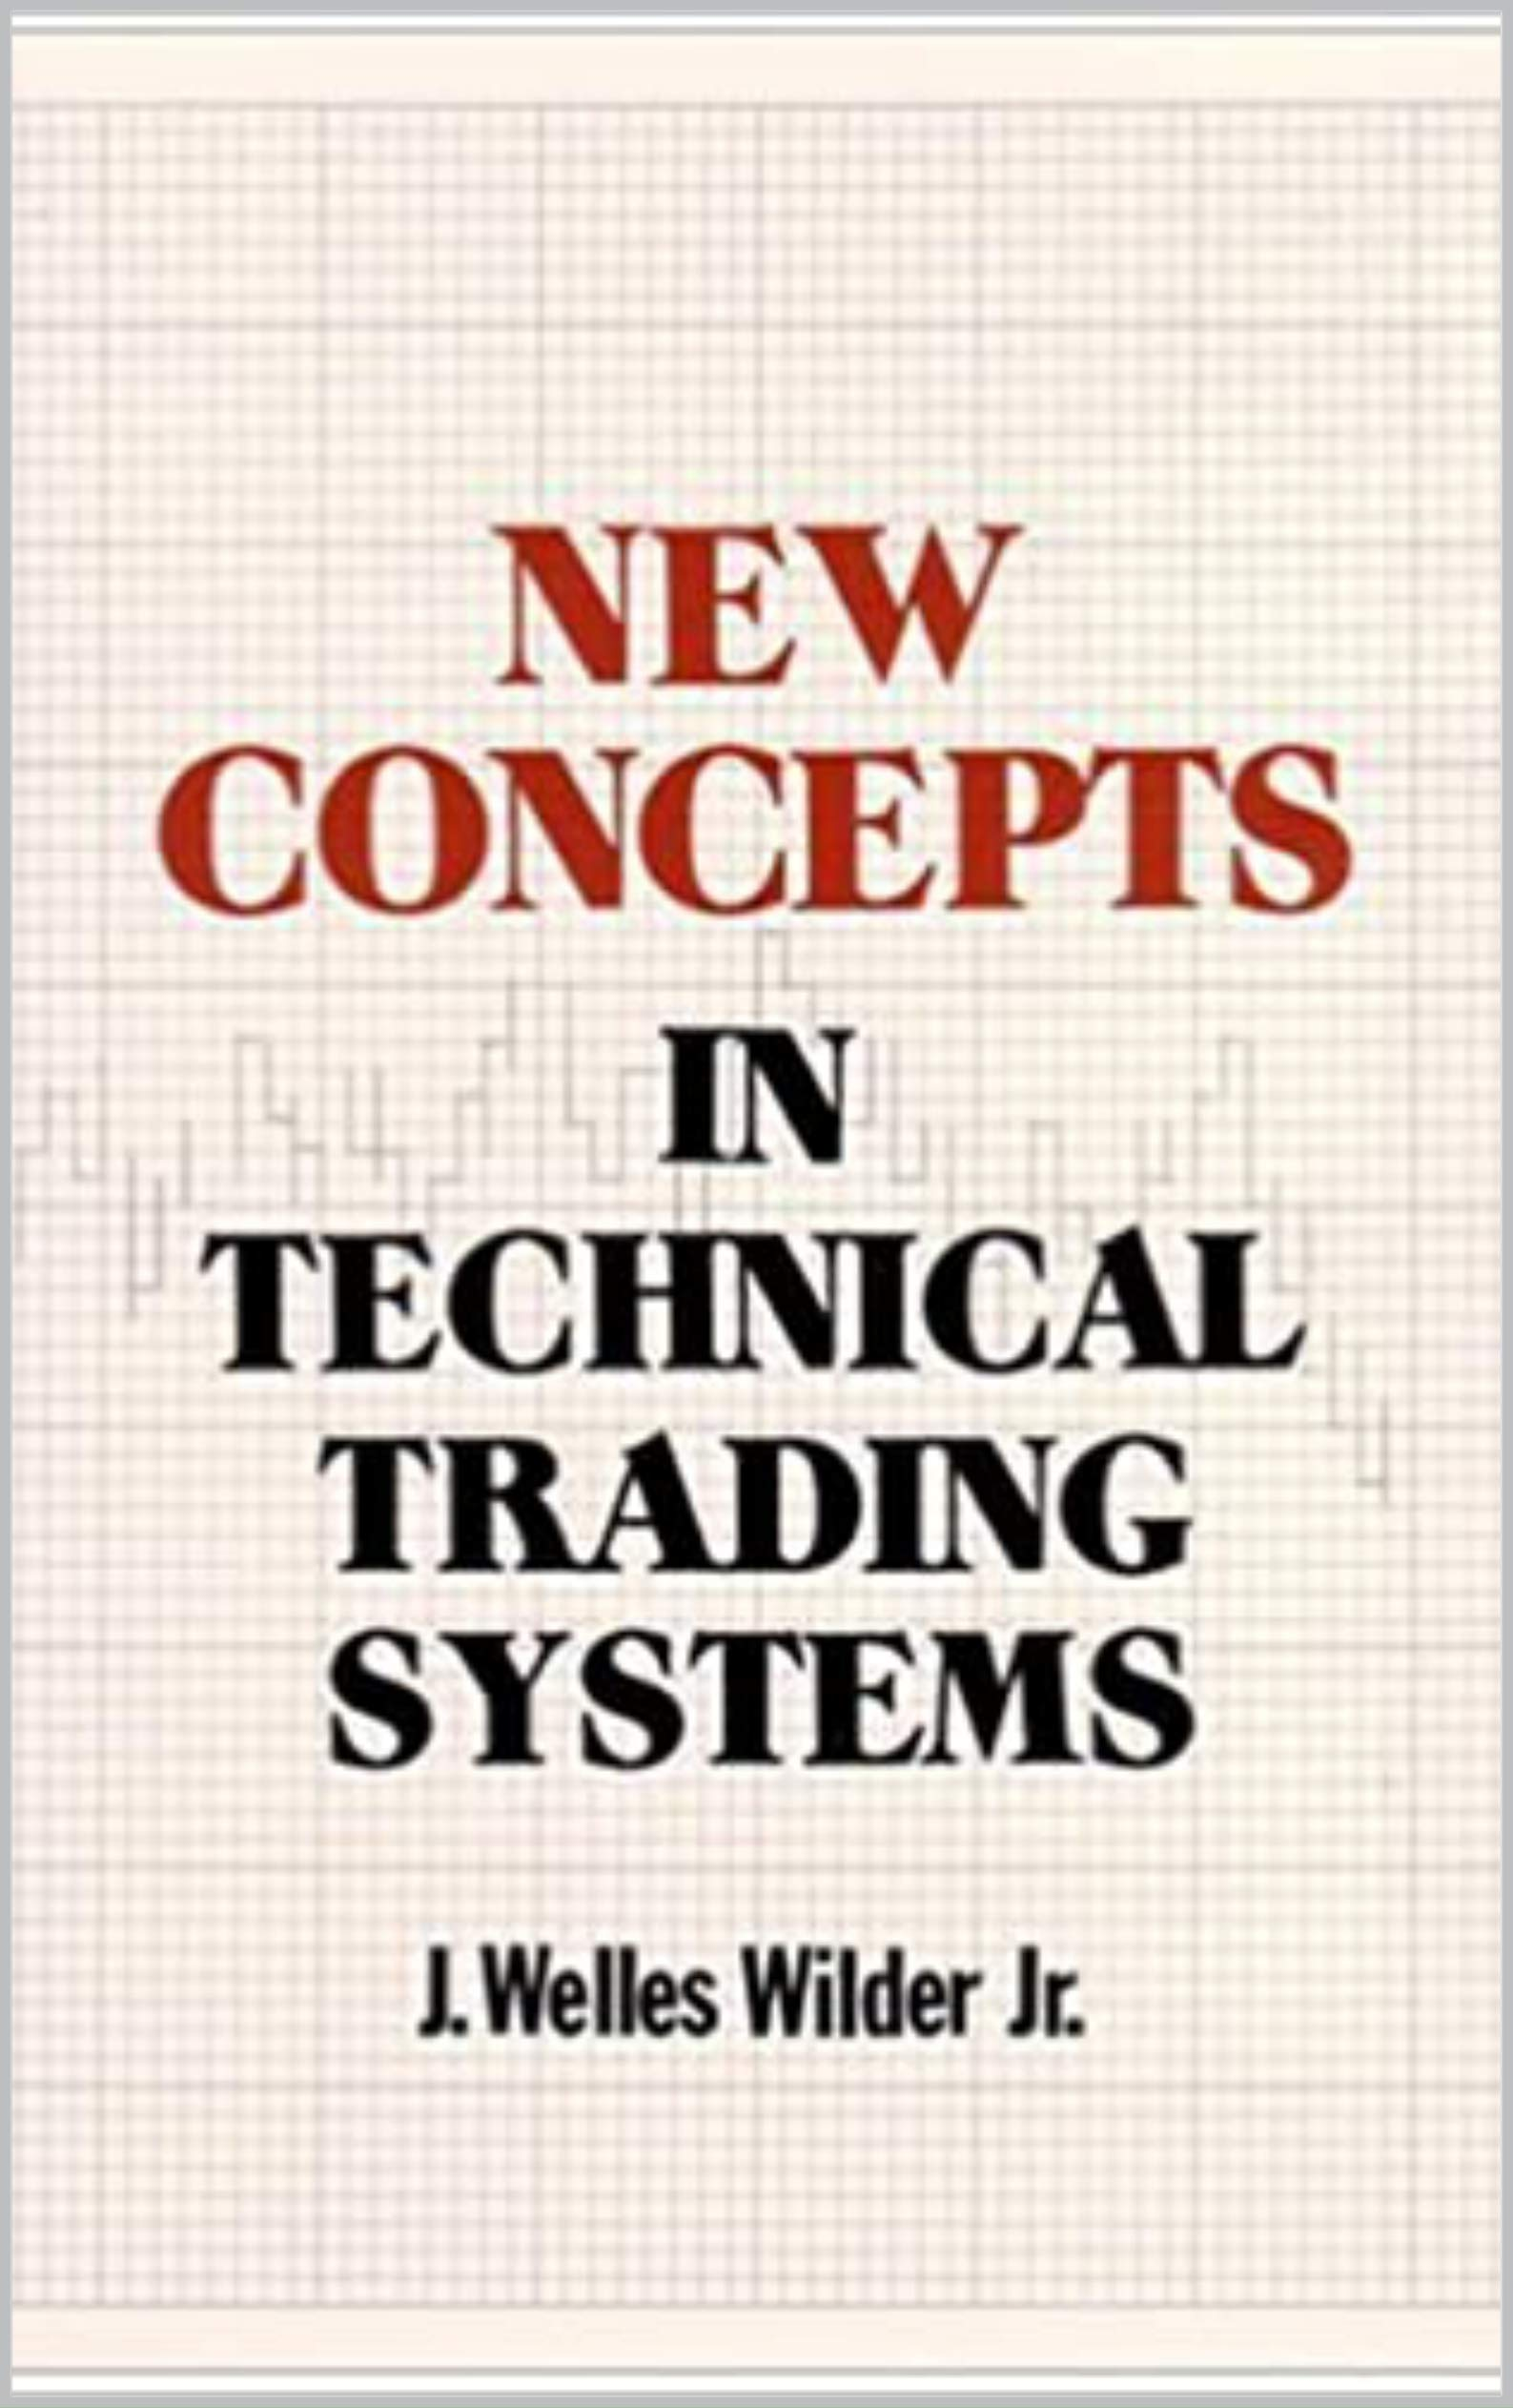 Image OfNew Concepts In Technical Trading Systems